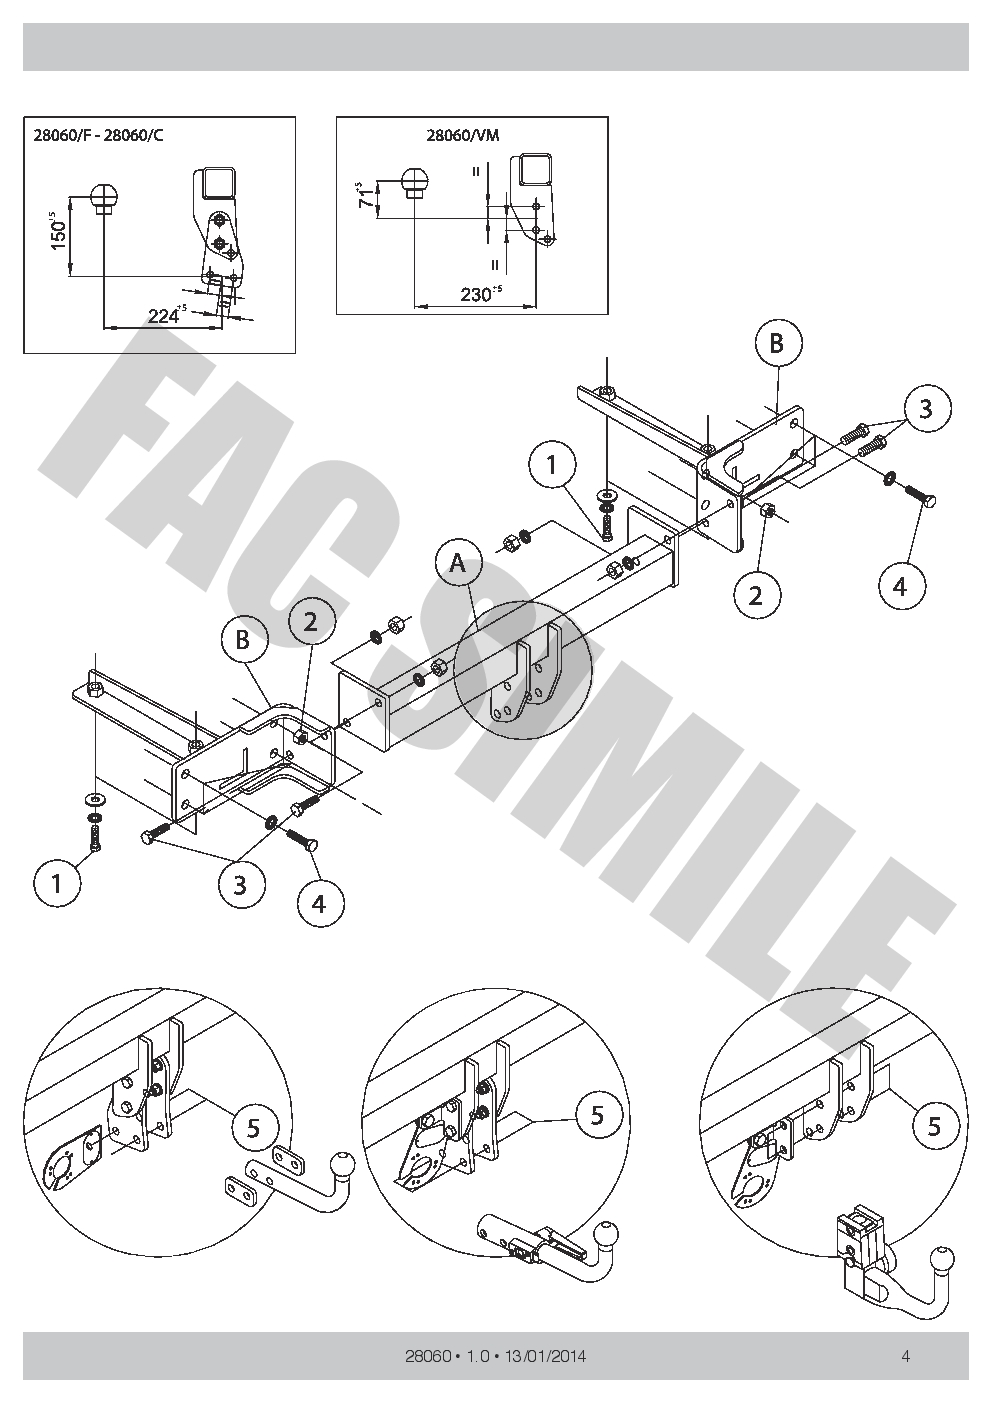 2002 Buick Regal Window Wiring Diagram Get Free Image About Wiring